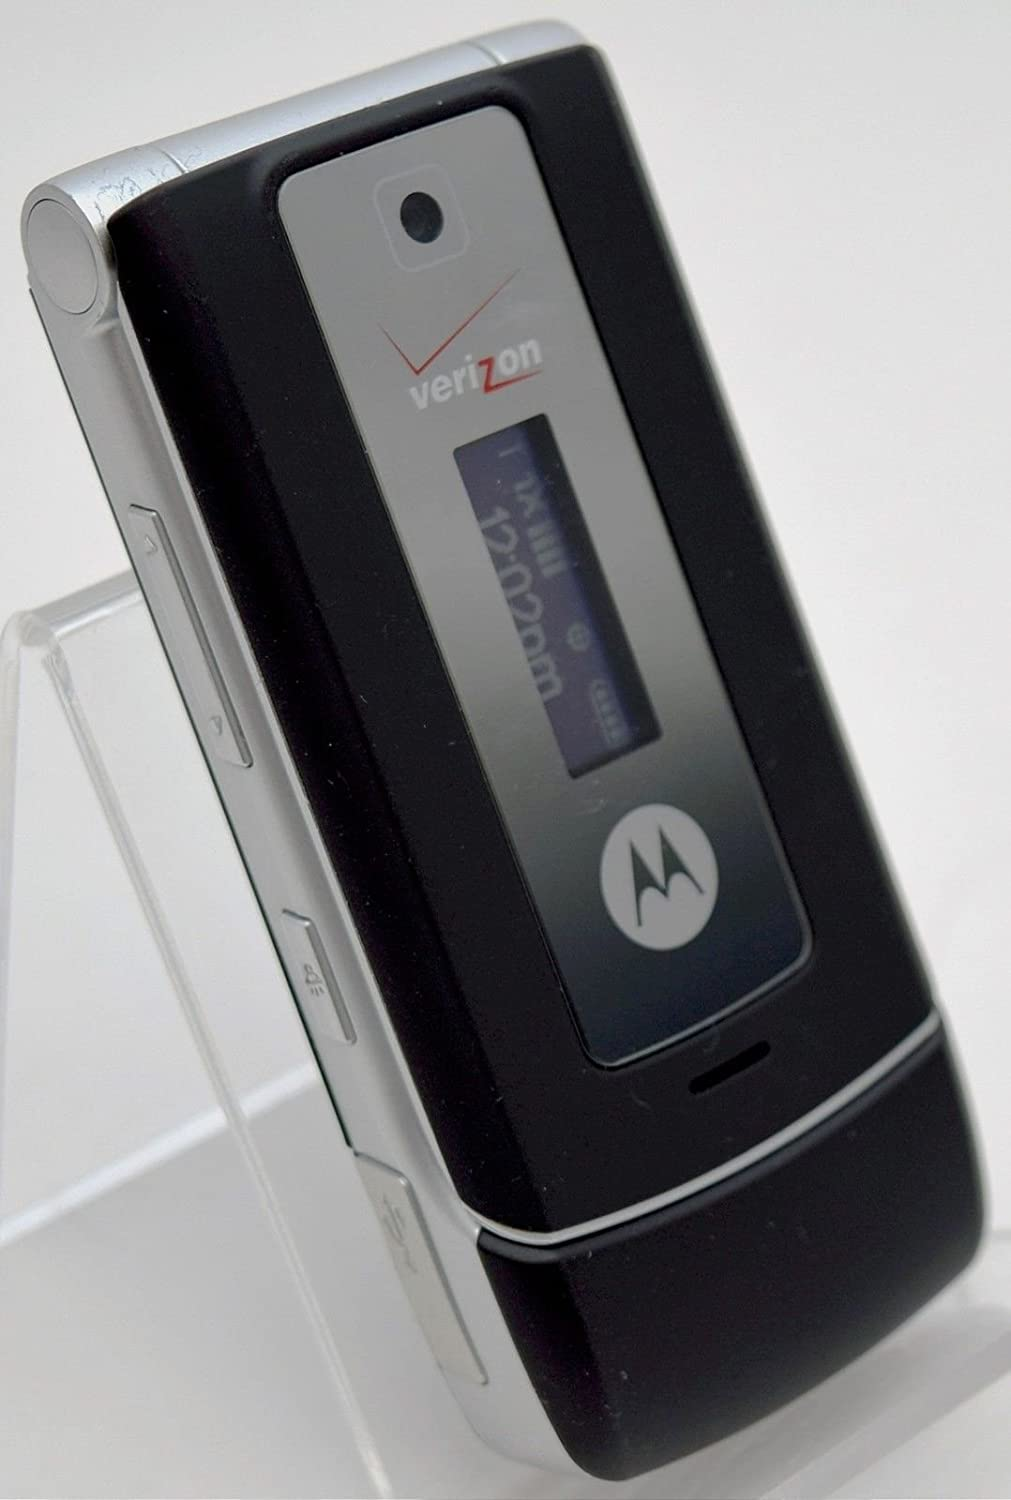 Amazon.com: Verizon or PagePlus Motorola W385 Great Condition Bluetooth  CDMA GPR Cell Phone: Cell Phones & Accessories